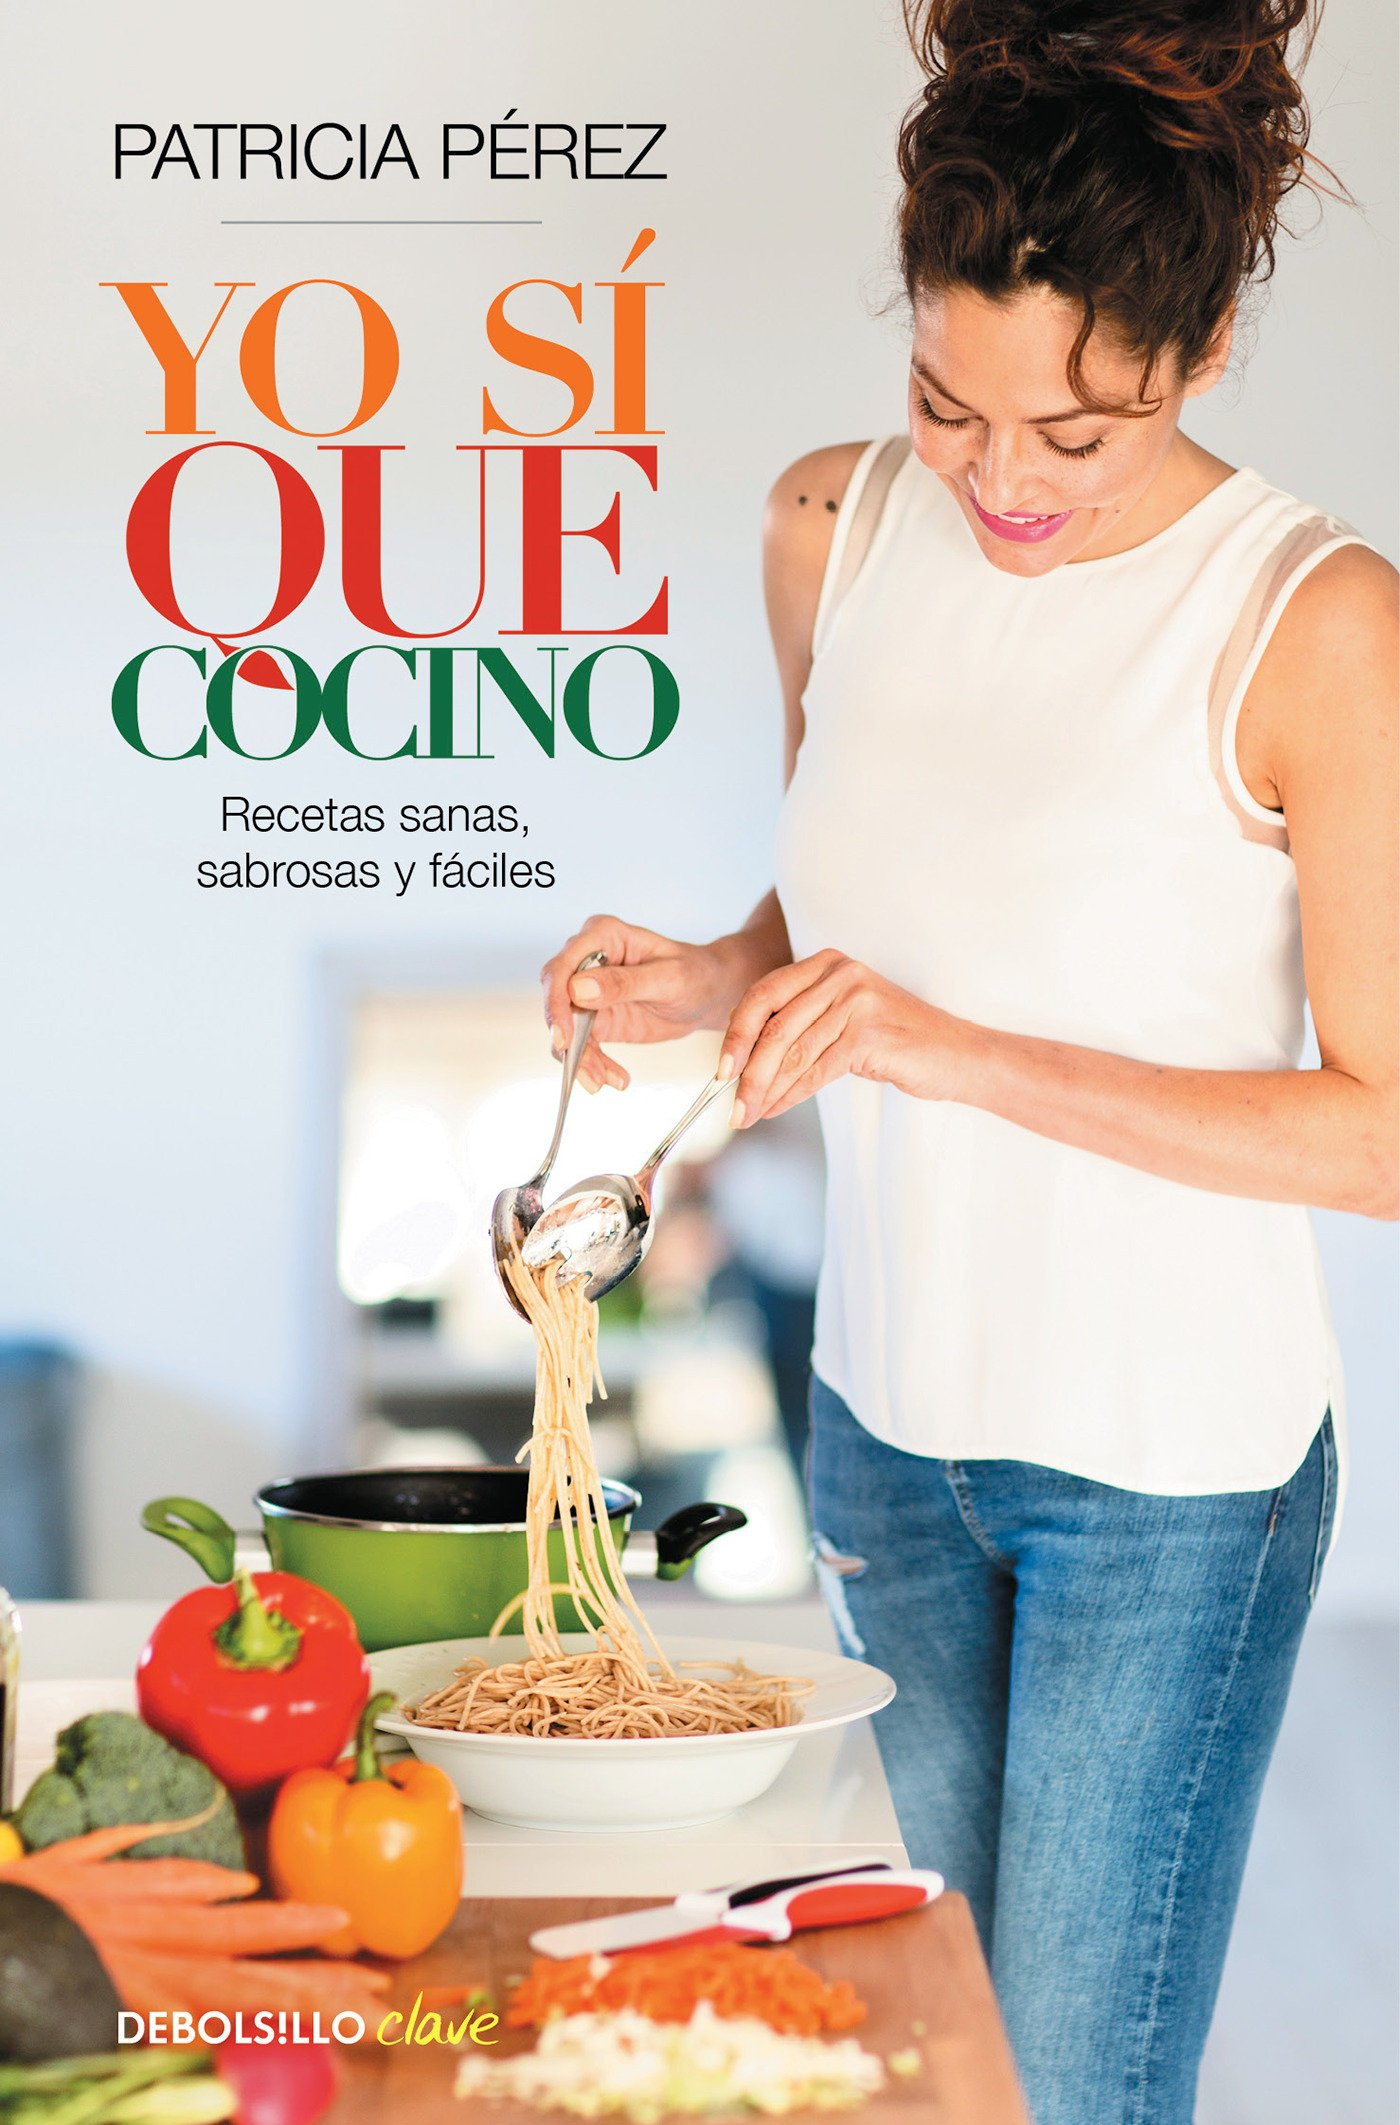 Yo sí que cocino / I Do Cook: Recetas sanas, sabrosas y faciles (Spanish Edition): Patricia Perez: 9788466337502: Amazon.com: Books